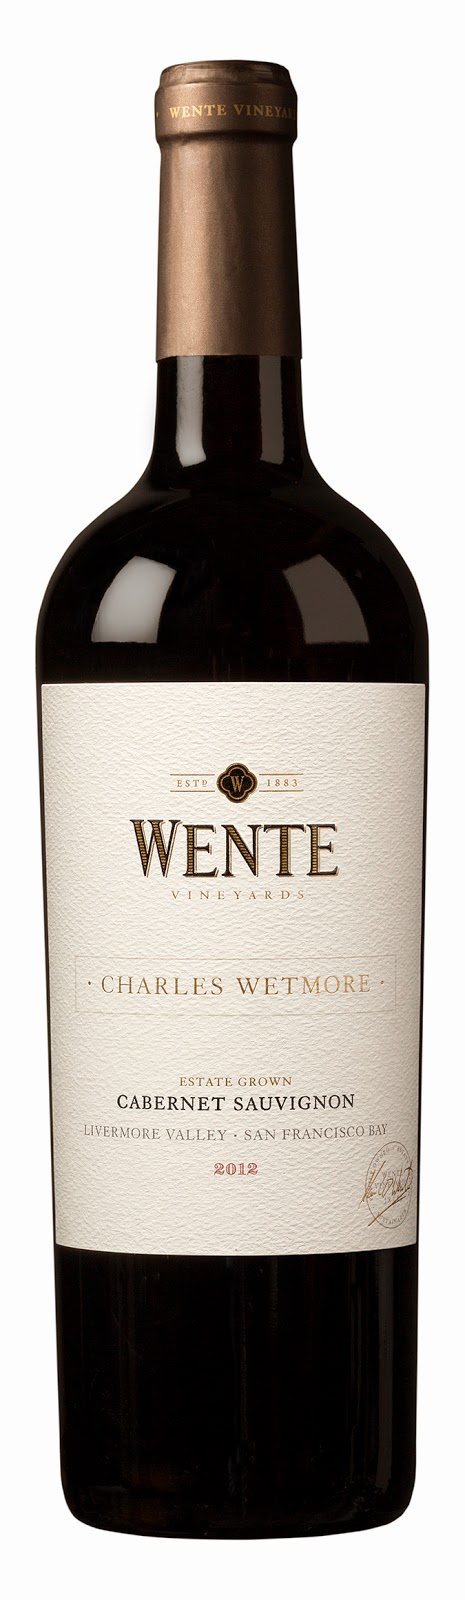 Wente Wine Charles Wetmore Estate Grown Cabernet Sauvignon